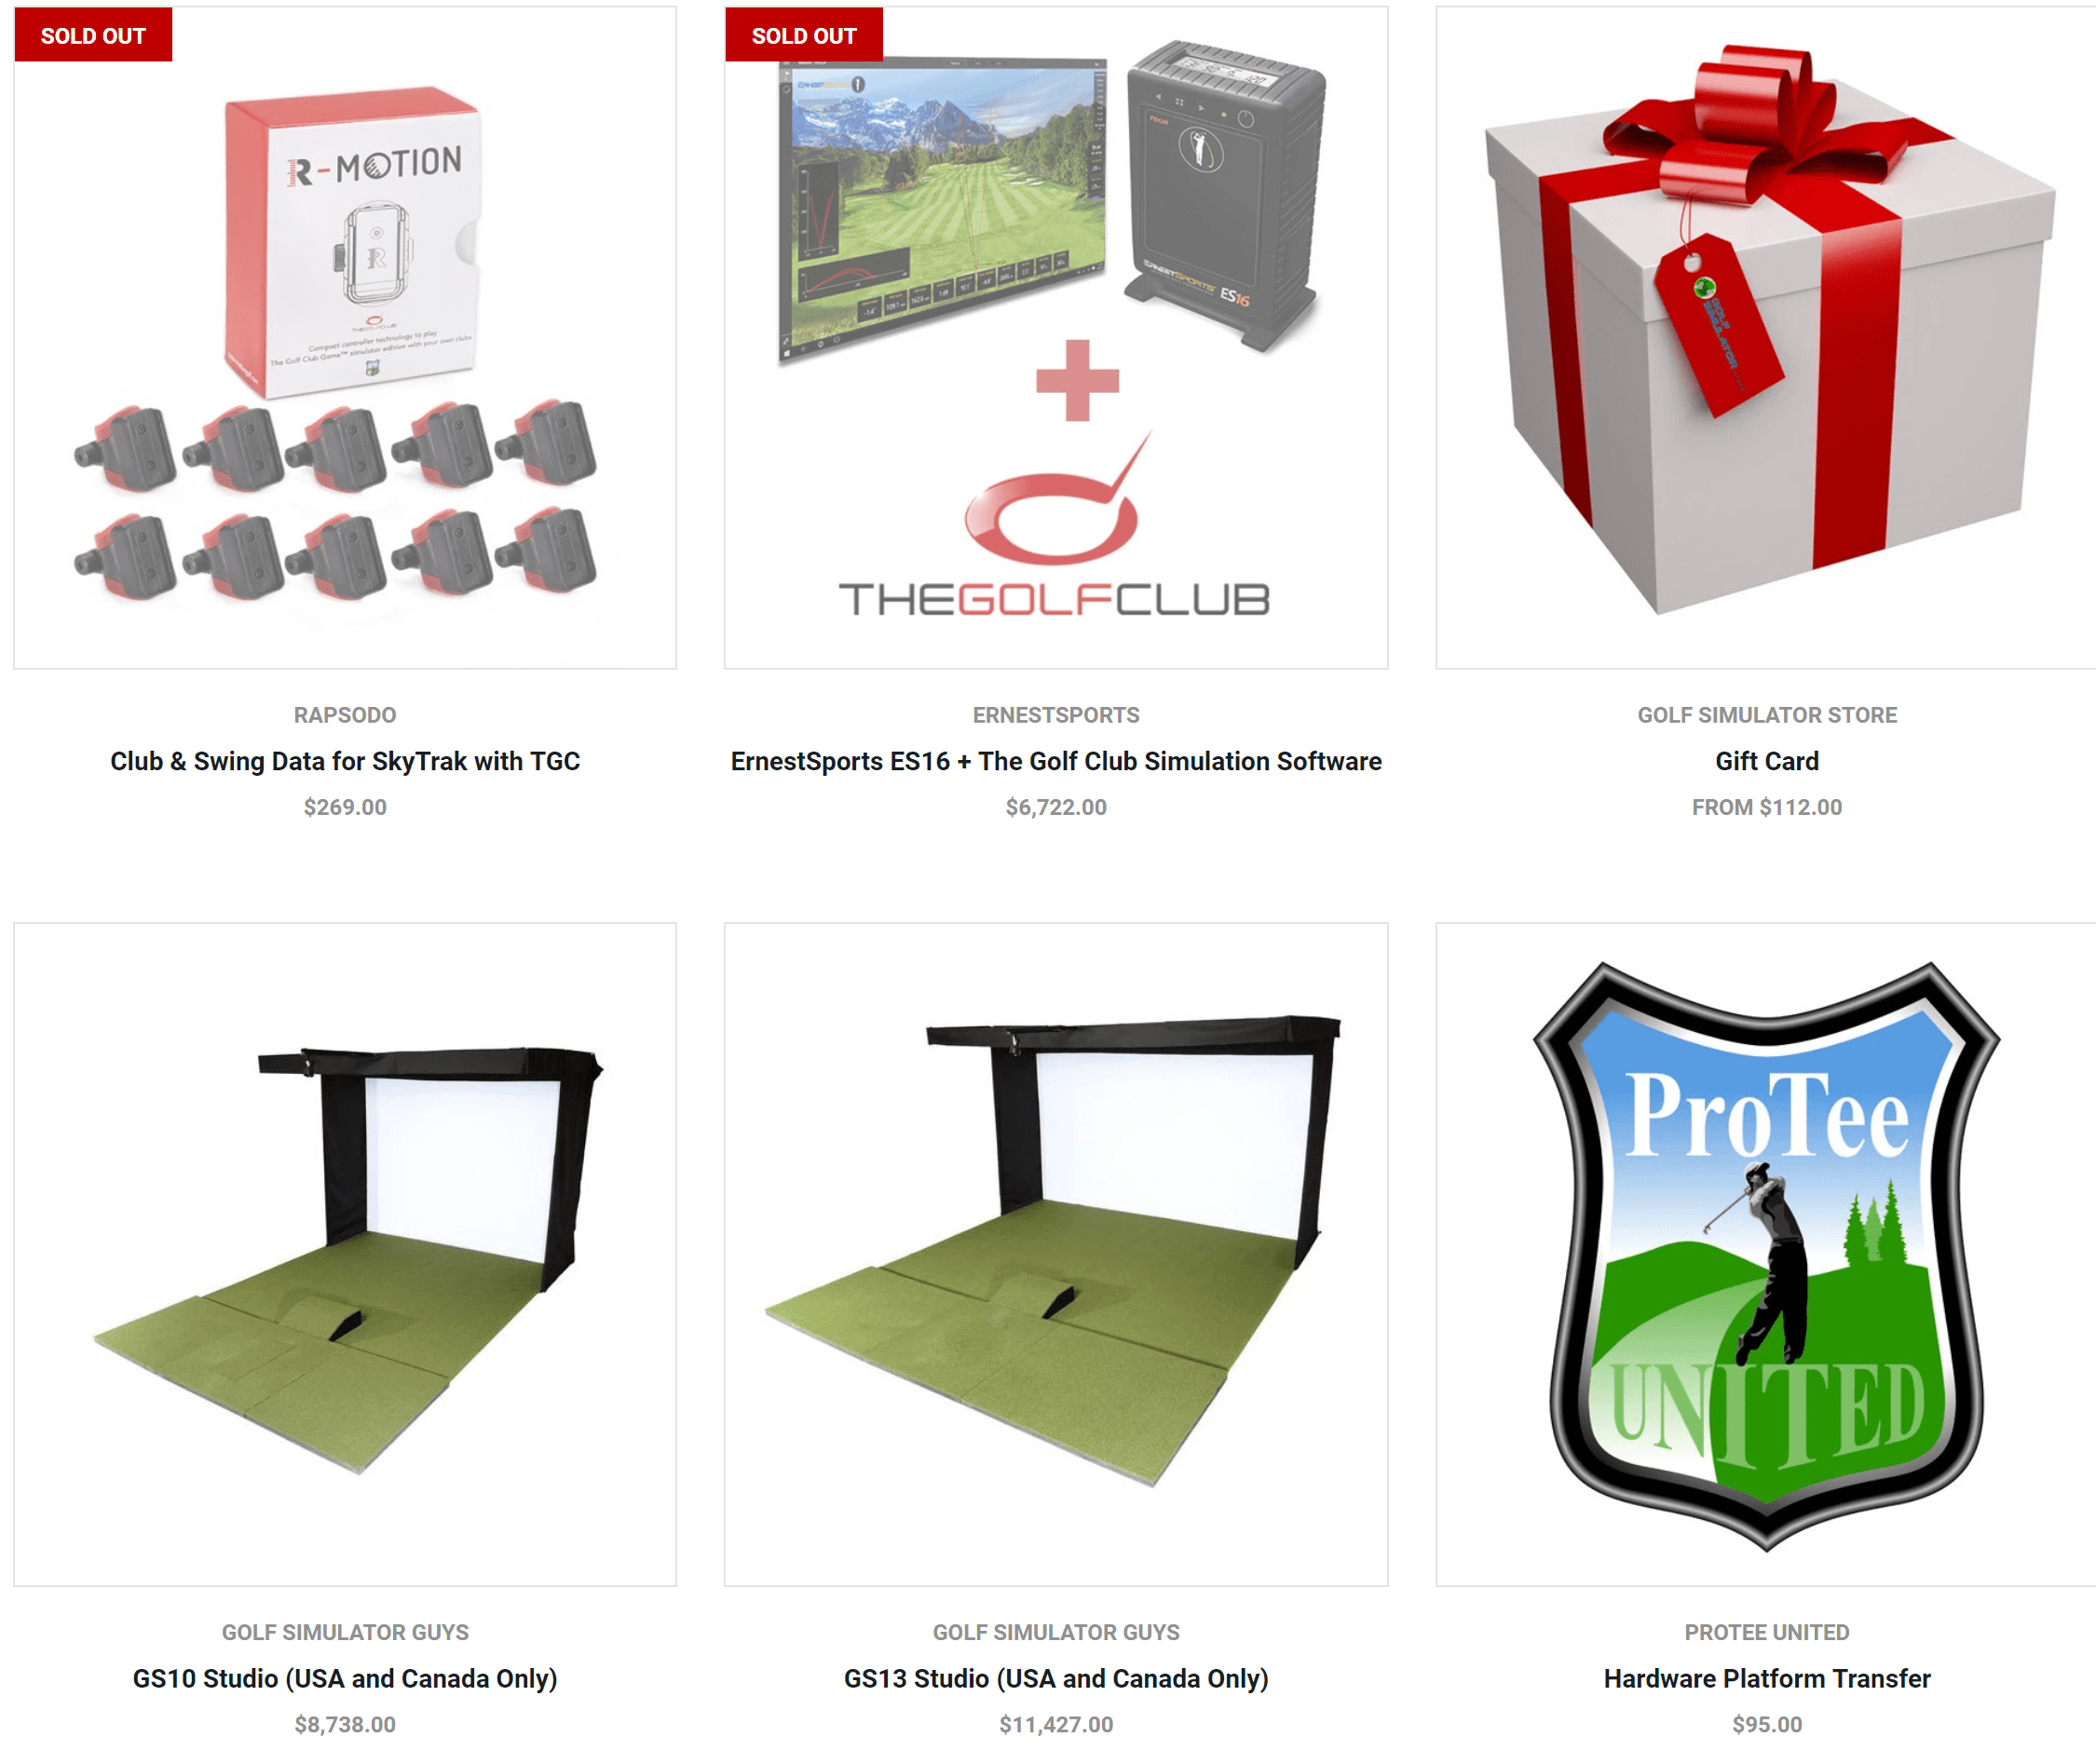 Golf simulator store products and pricing